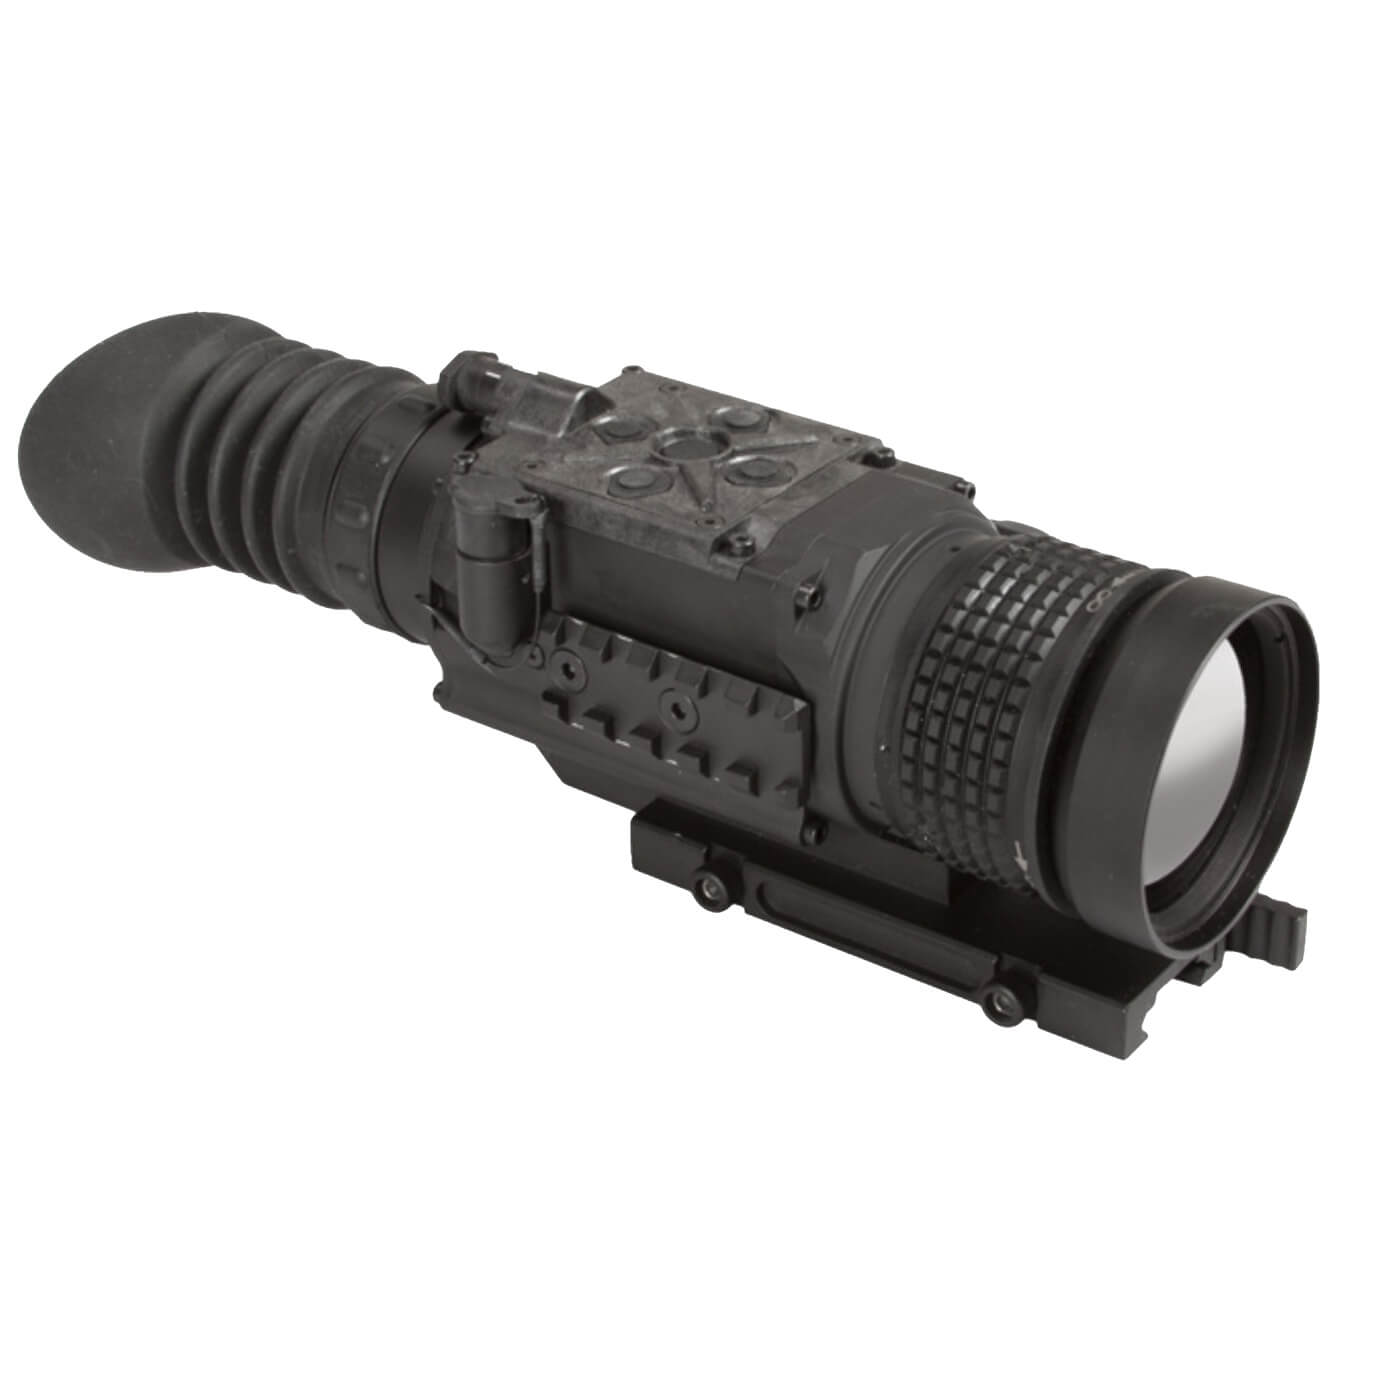 Armasight Zeus 336 thermal riffle scope review